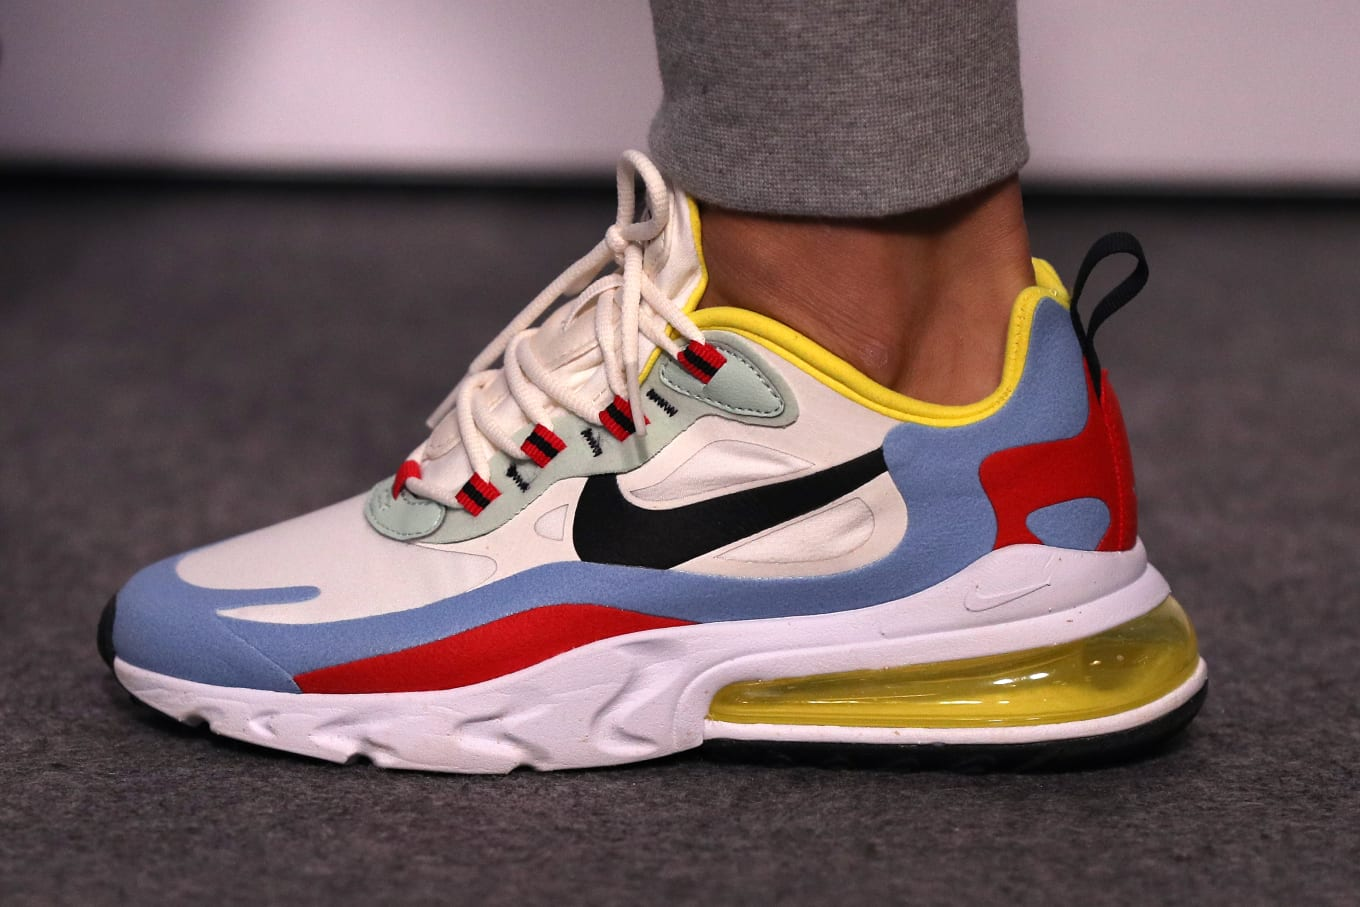 Nike Air Max 270 React Release Date | Sole Collector